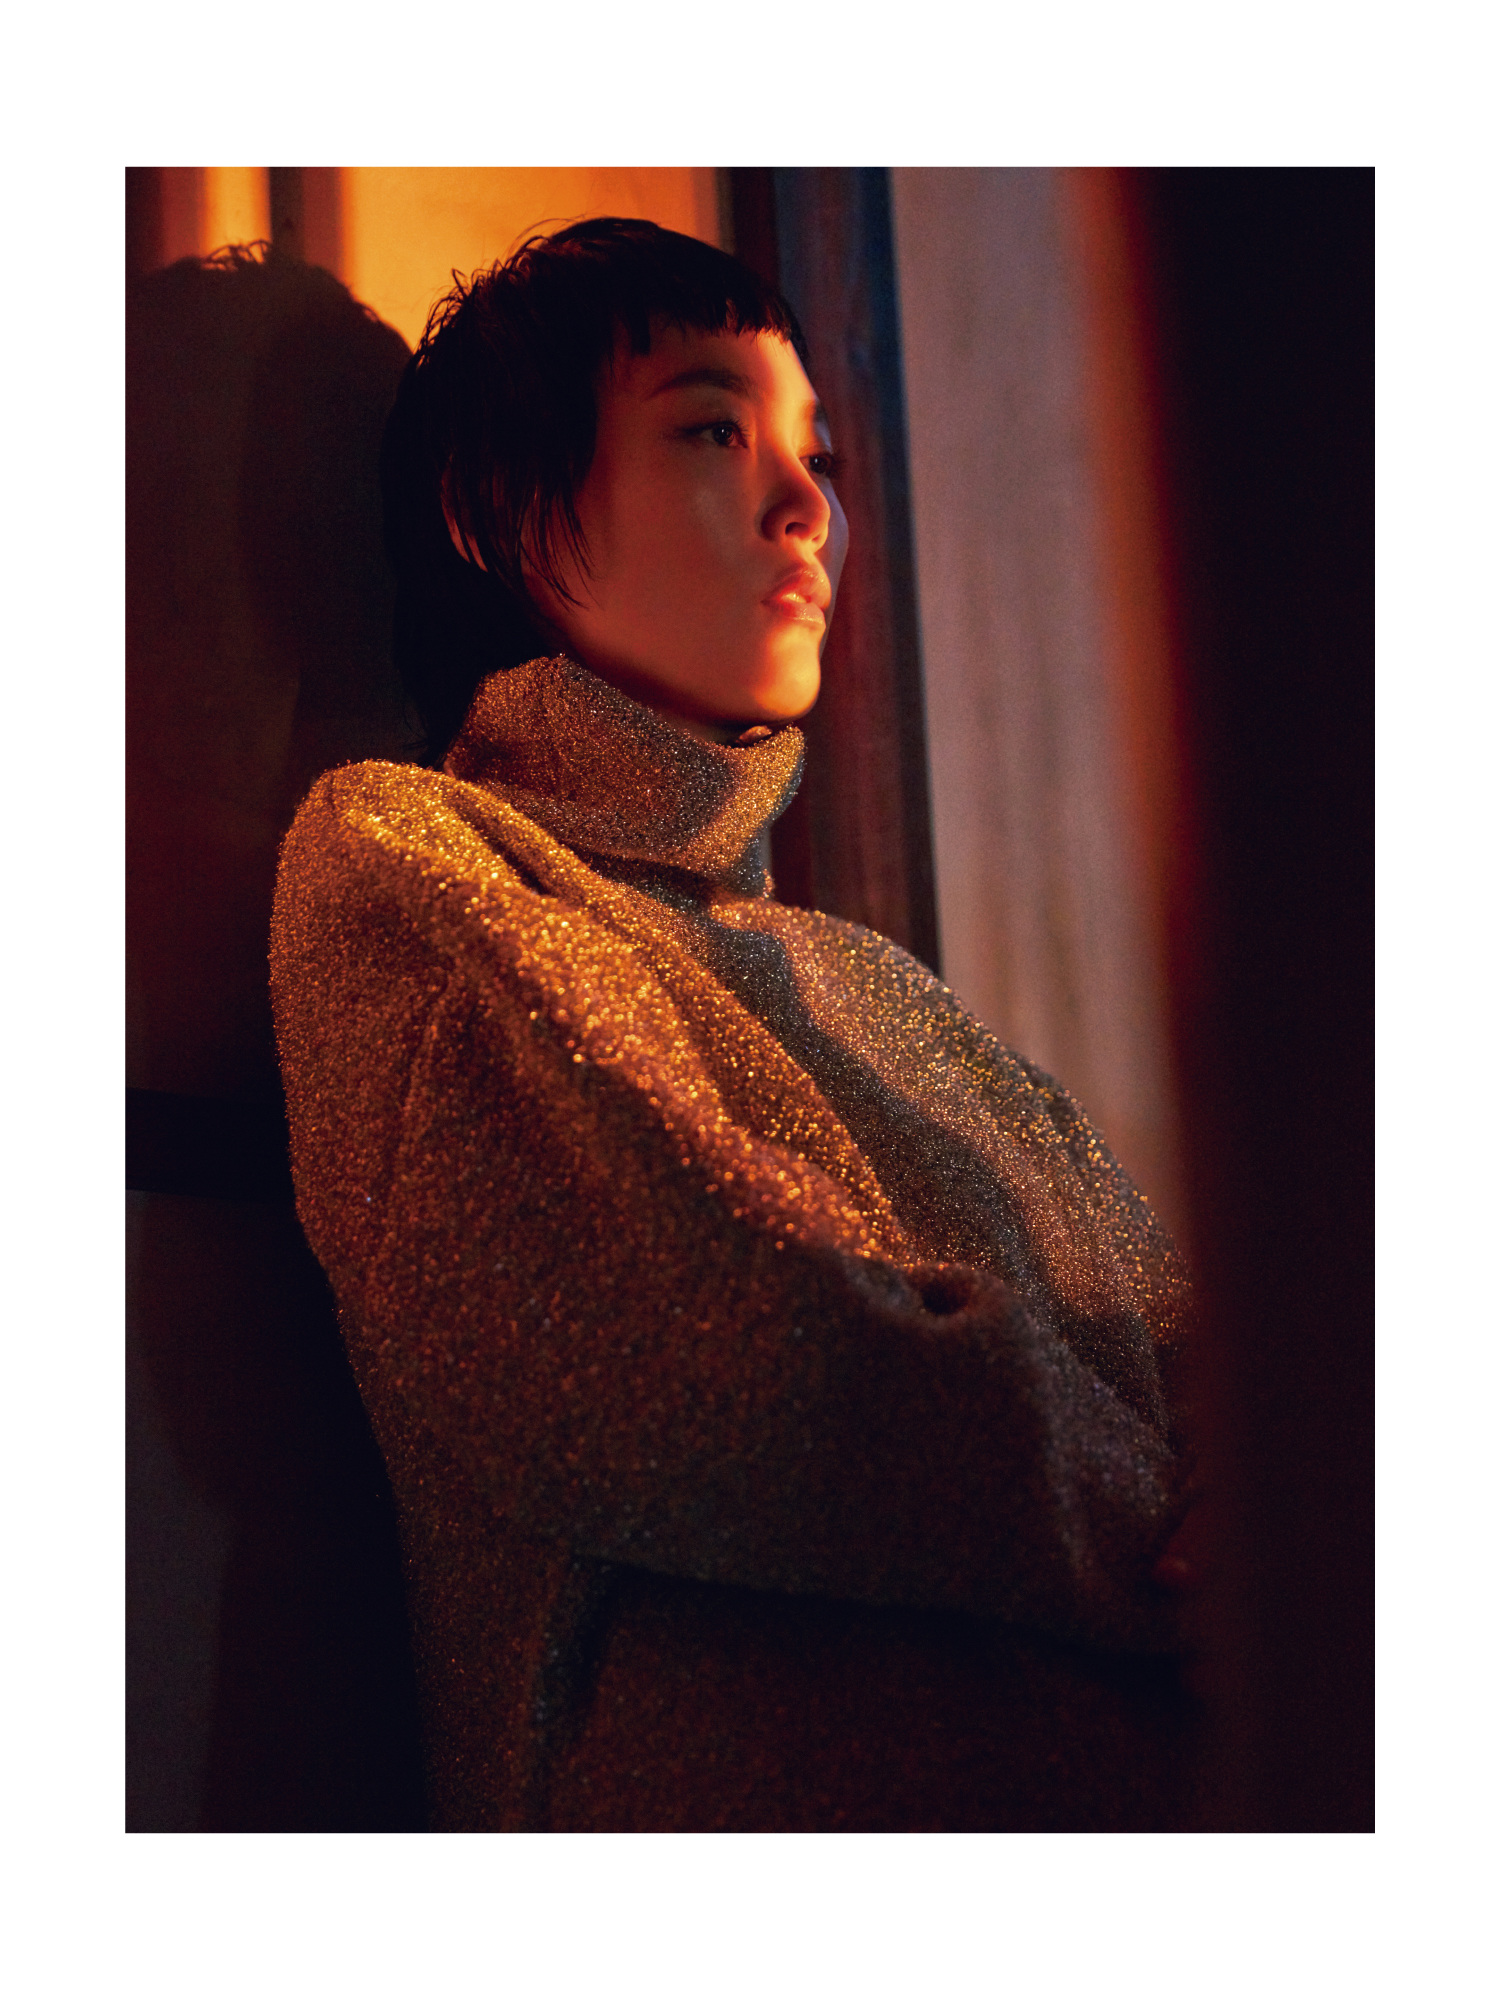 chair under cover disabled toilet rinko kikuchi - madame figaro chine jumbo photographe | fashion photography